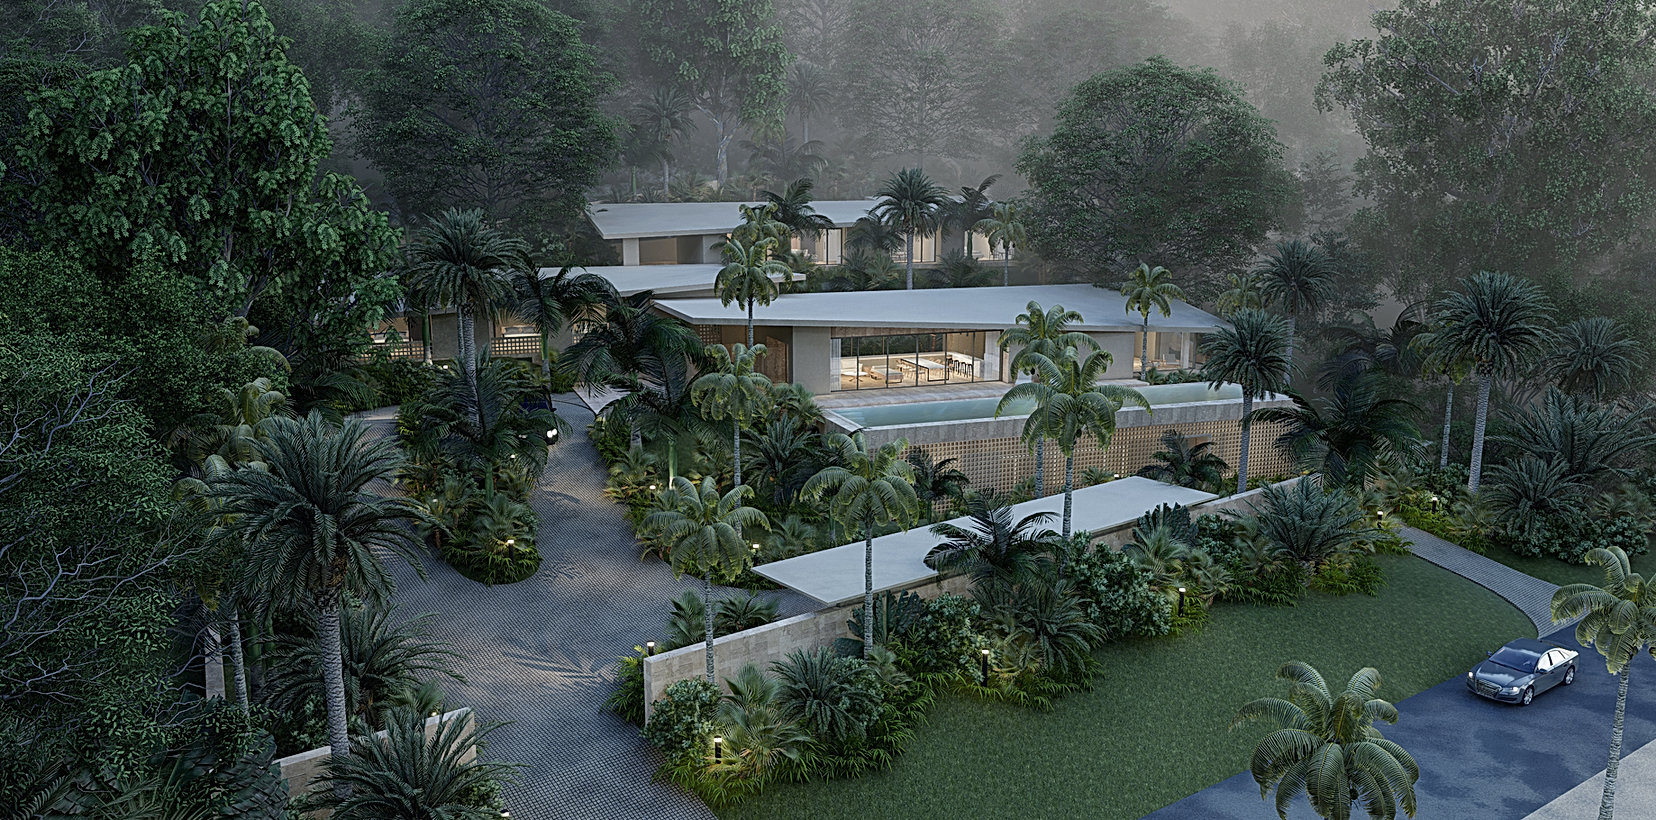 BLOOM_ARCHITECTURE_HILL_HOUSE_KEP_001.jp